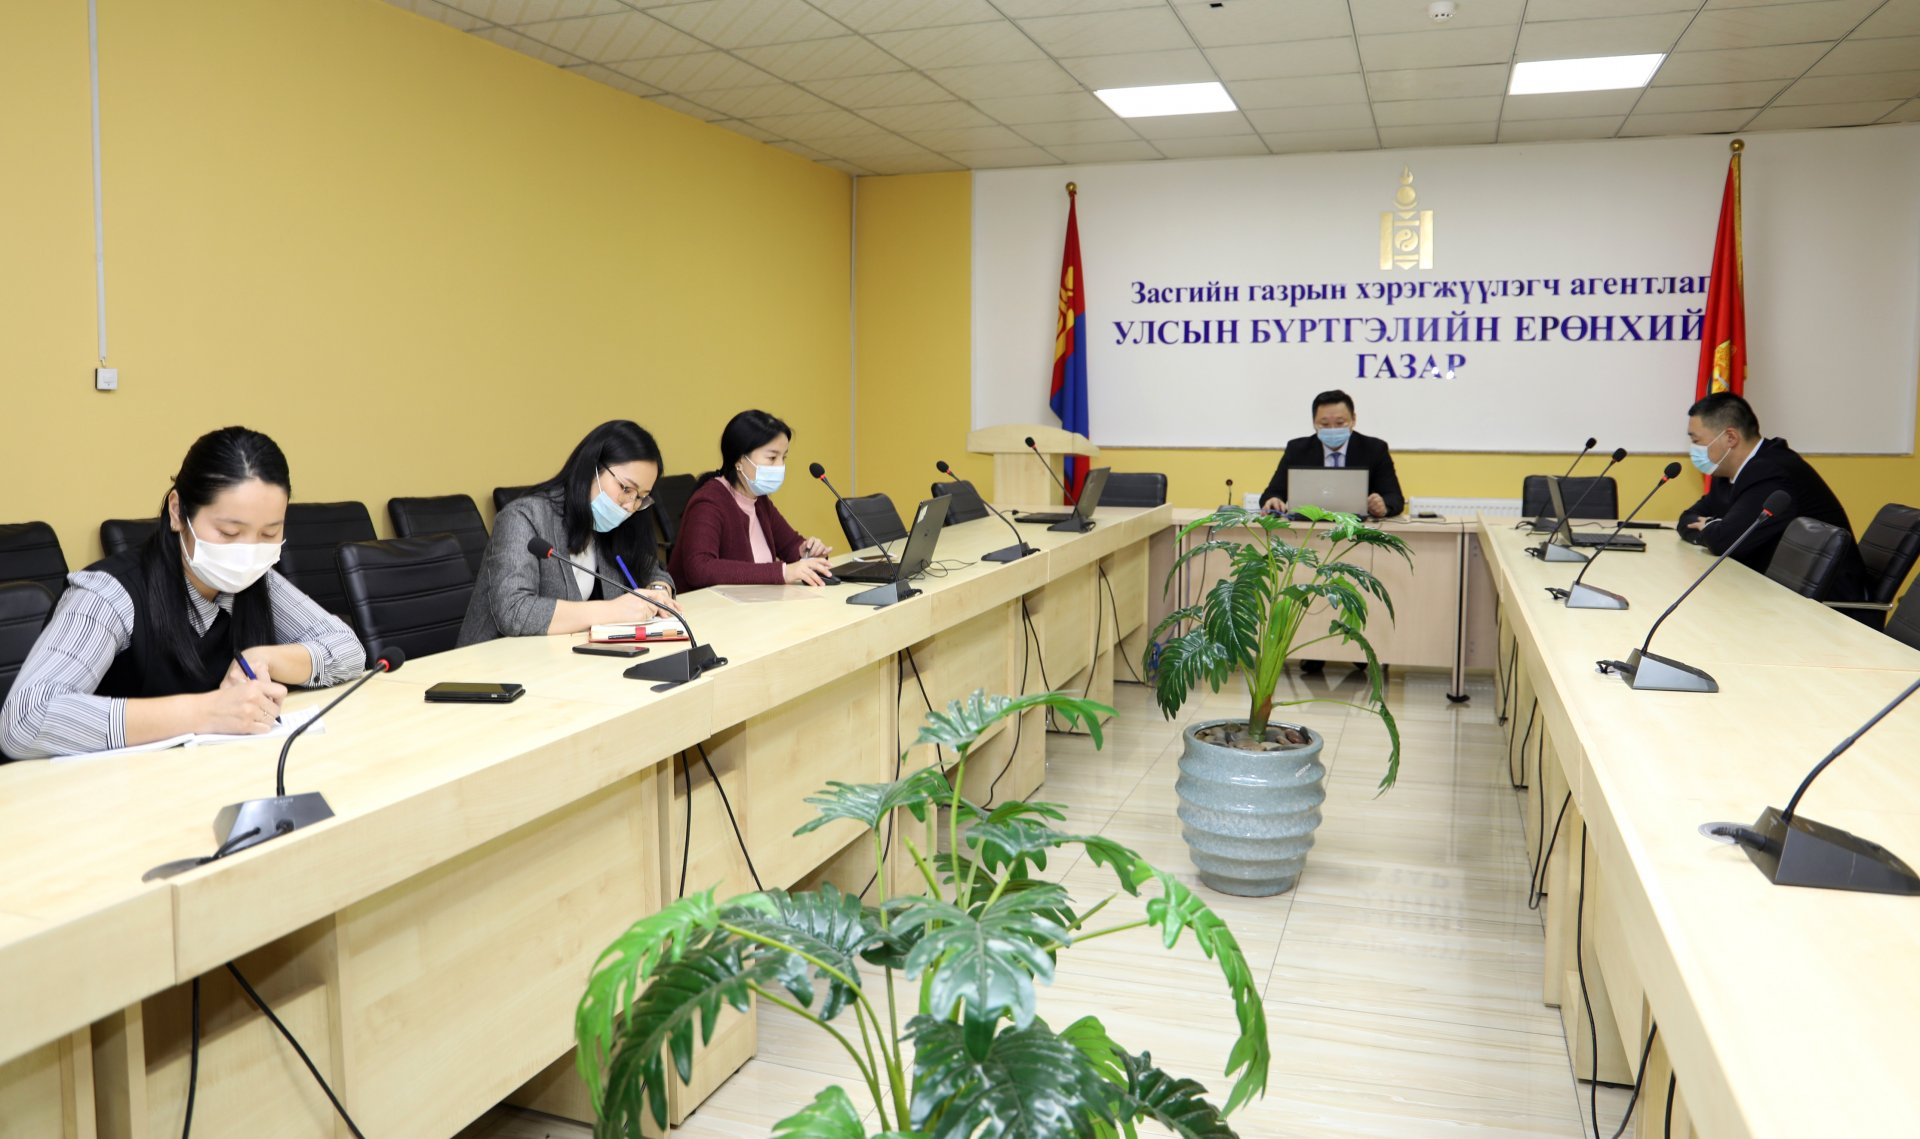 Smart Government Project implementation support mission held virtually